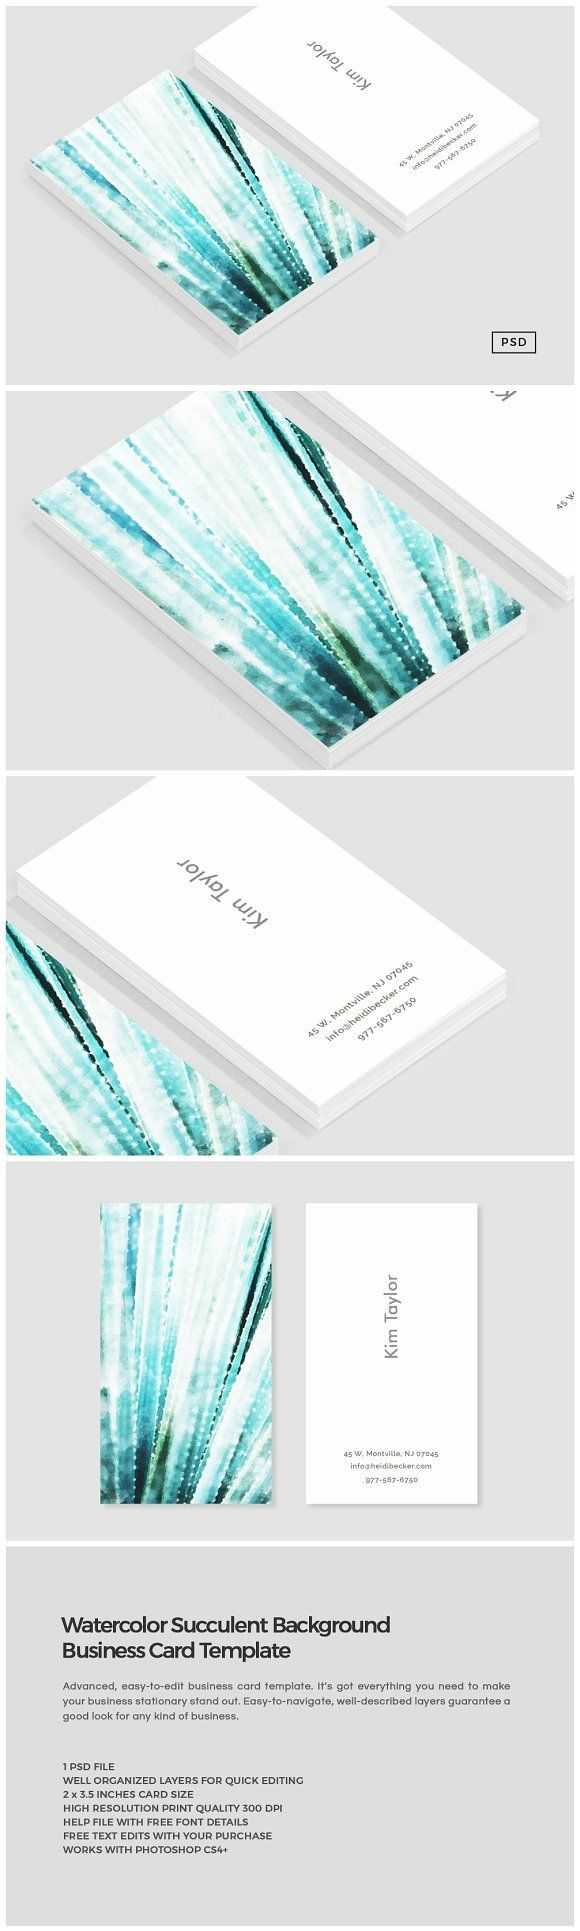 9365 best Professional Business Cards images on Pinterest ...